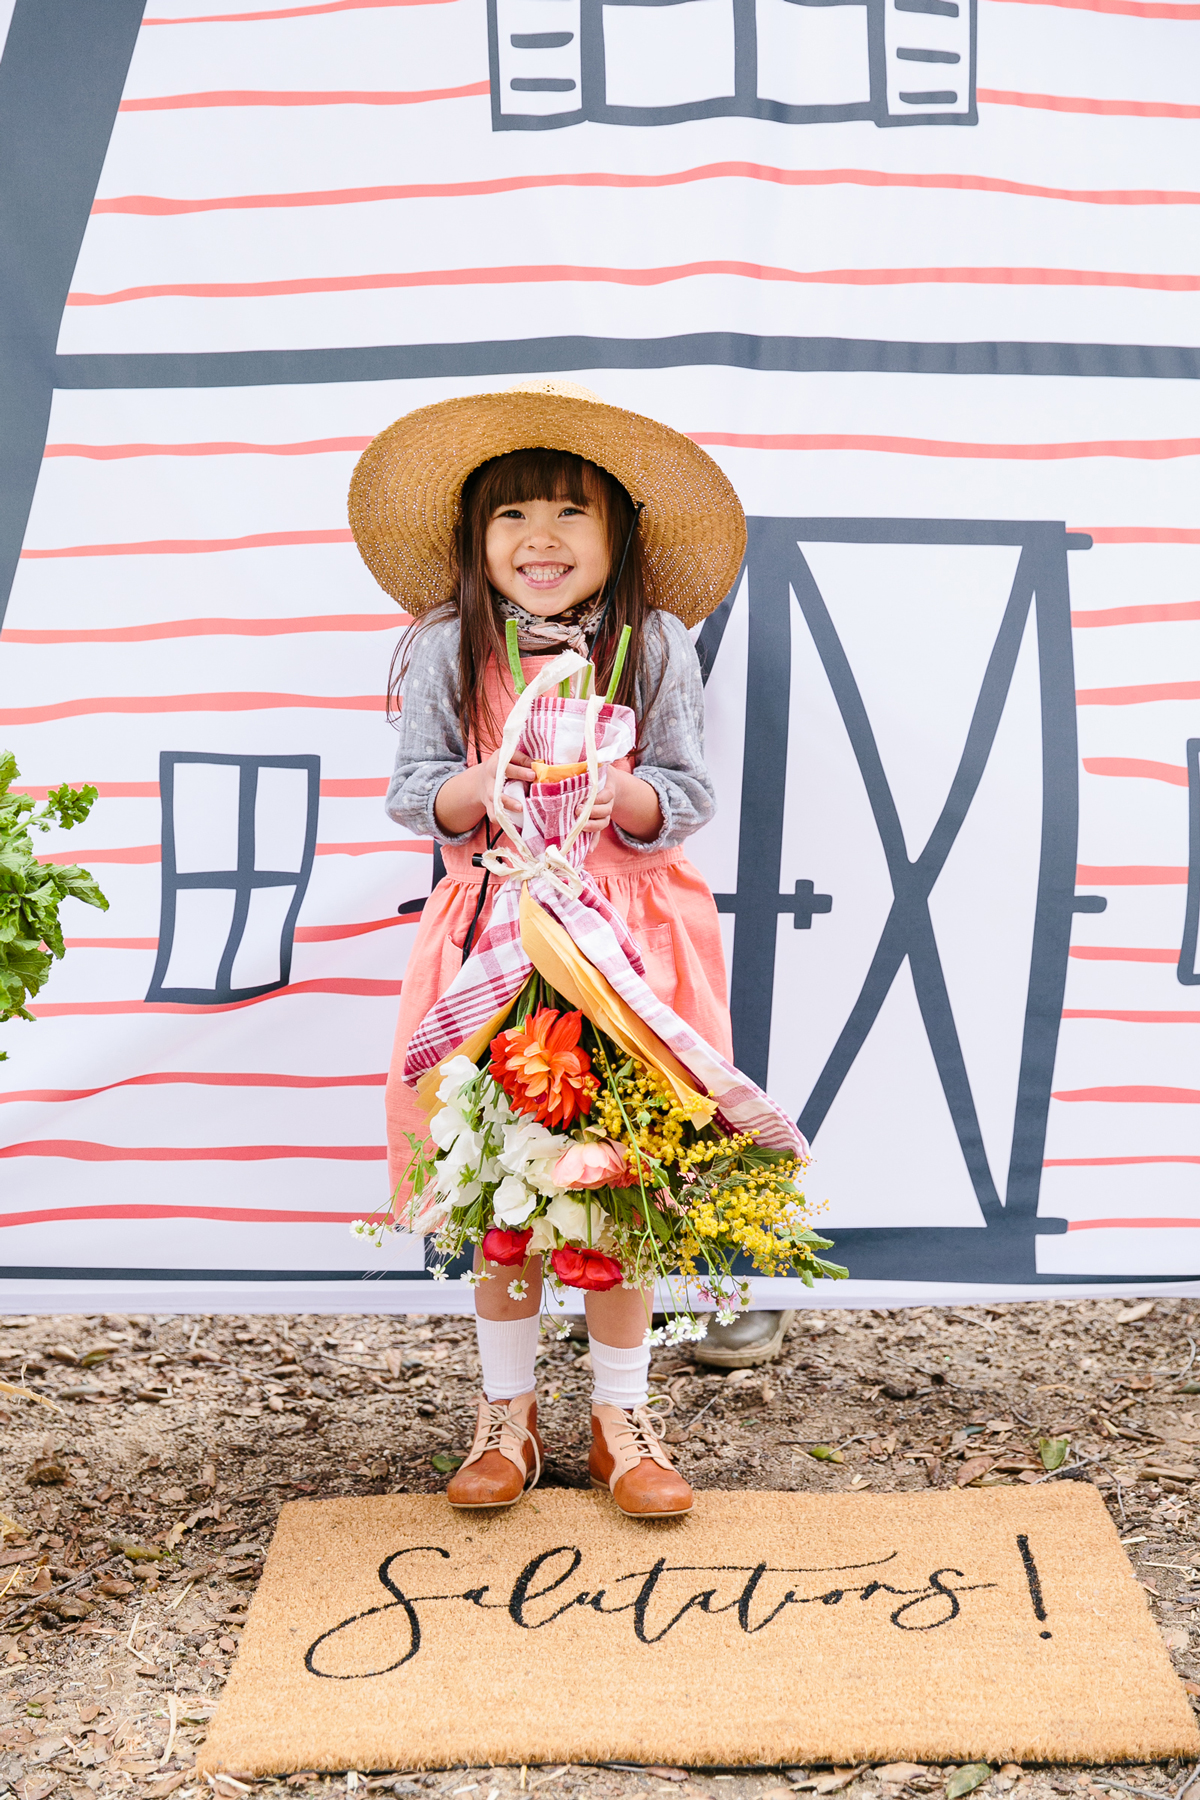 charlottes web childrens party girl holding flowers posing in front of barn backdrop